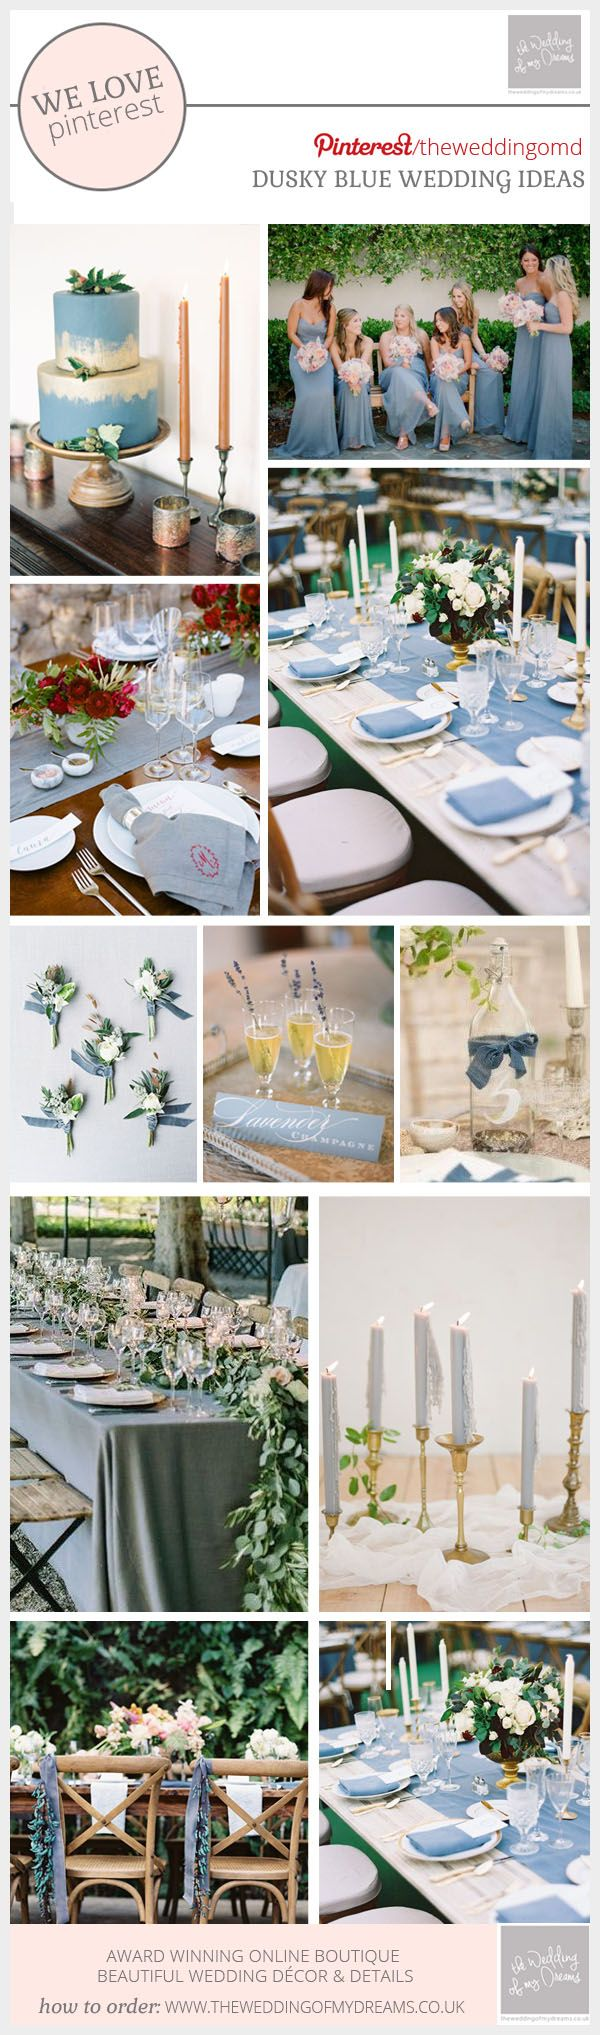 Dusky Blue Wedding Ideas – Decorations and Details